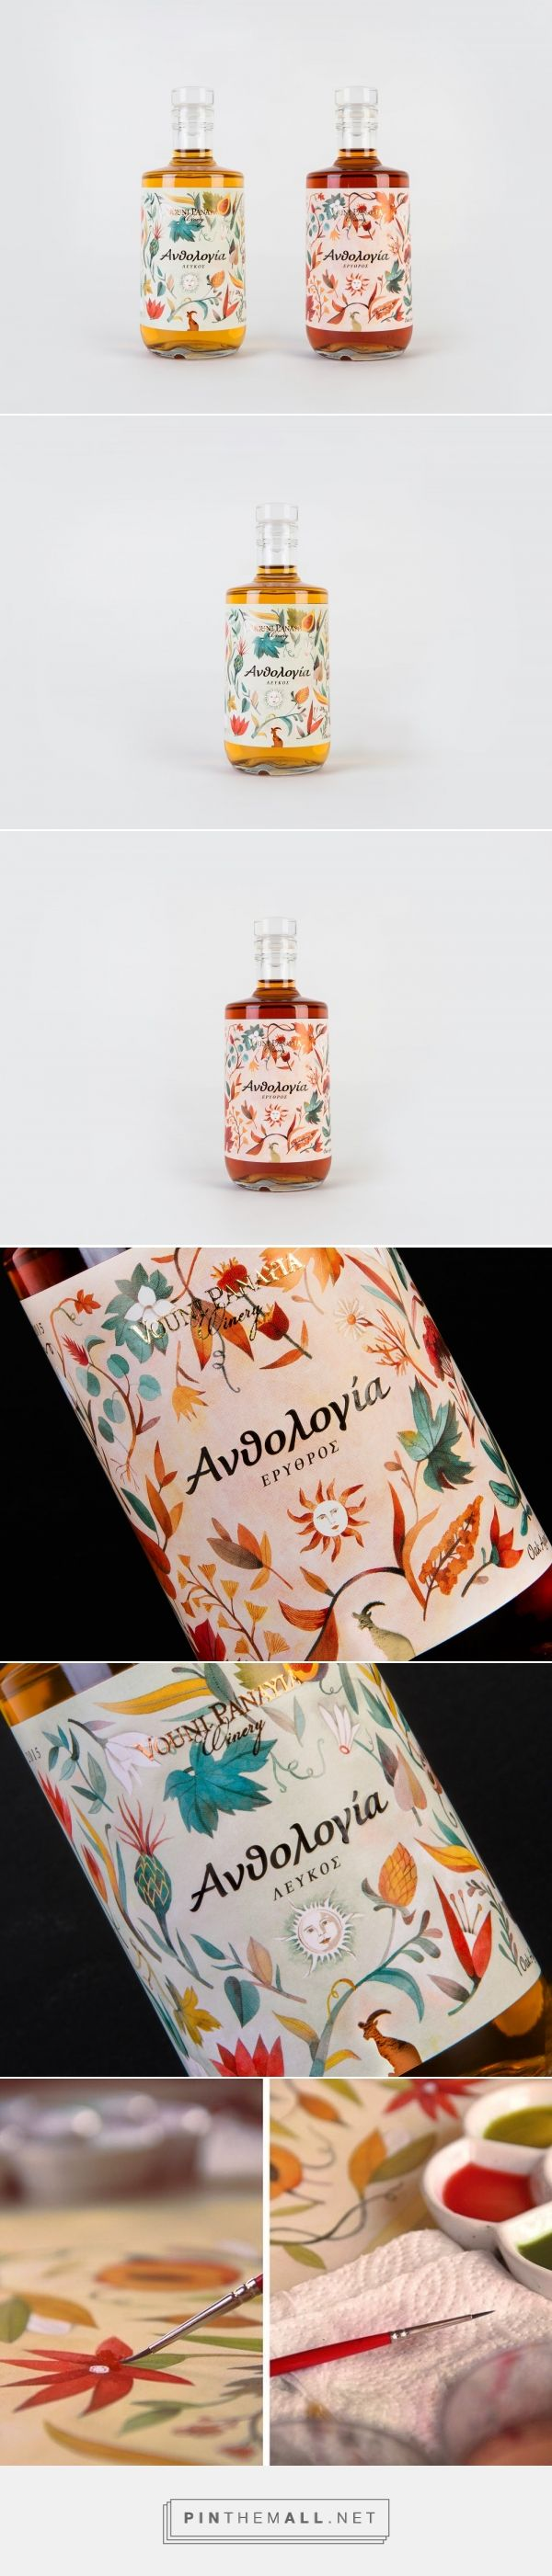 Anthologia wine packaging design by Marios Karystios / Illustrated by Luisa Rivera - http://www.packagingoftheworld.com/2018/02/anthologia.html